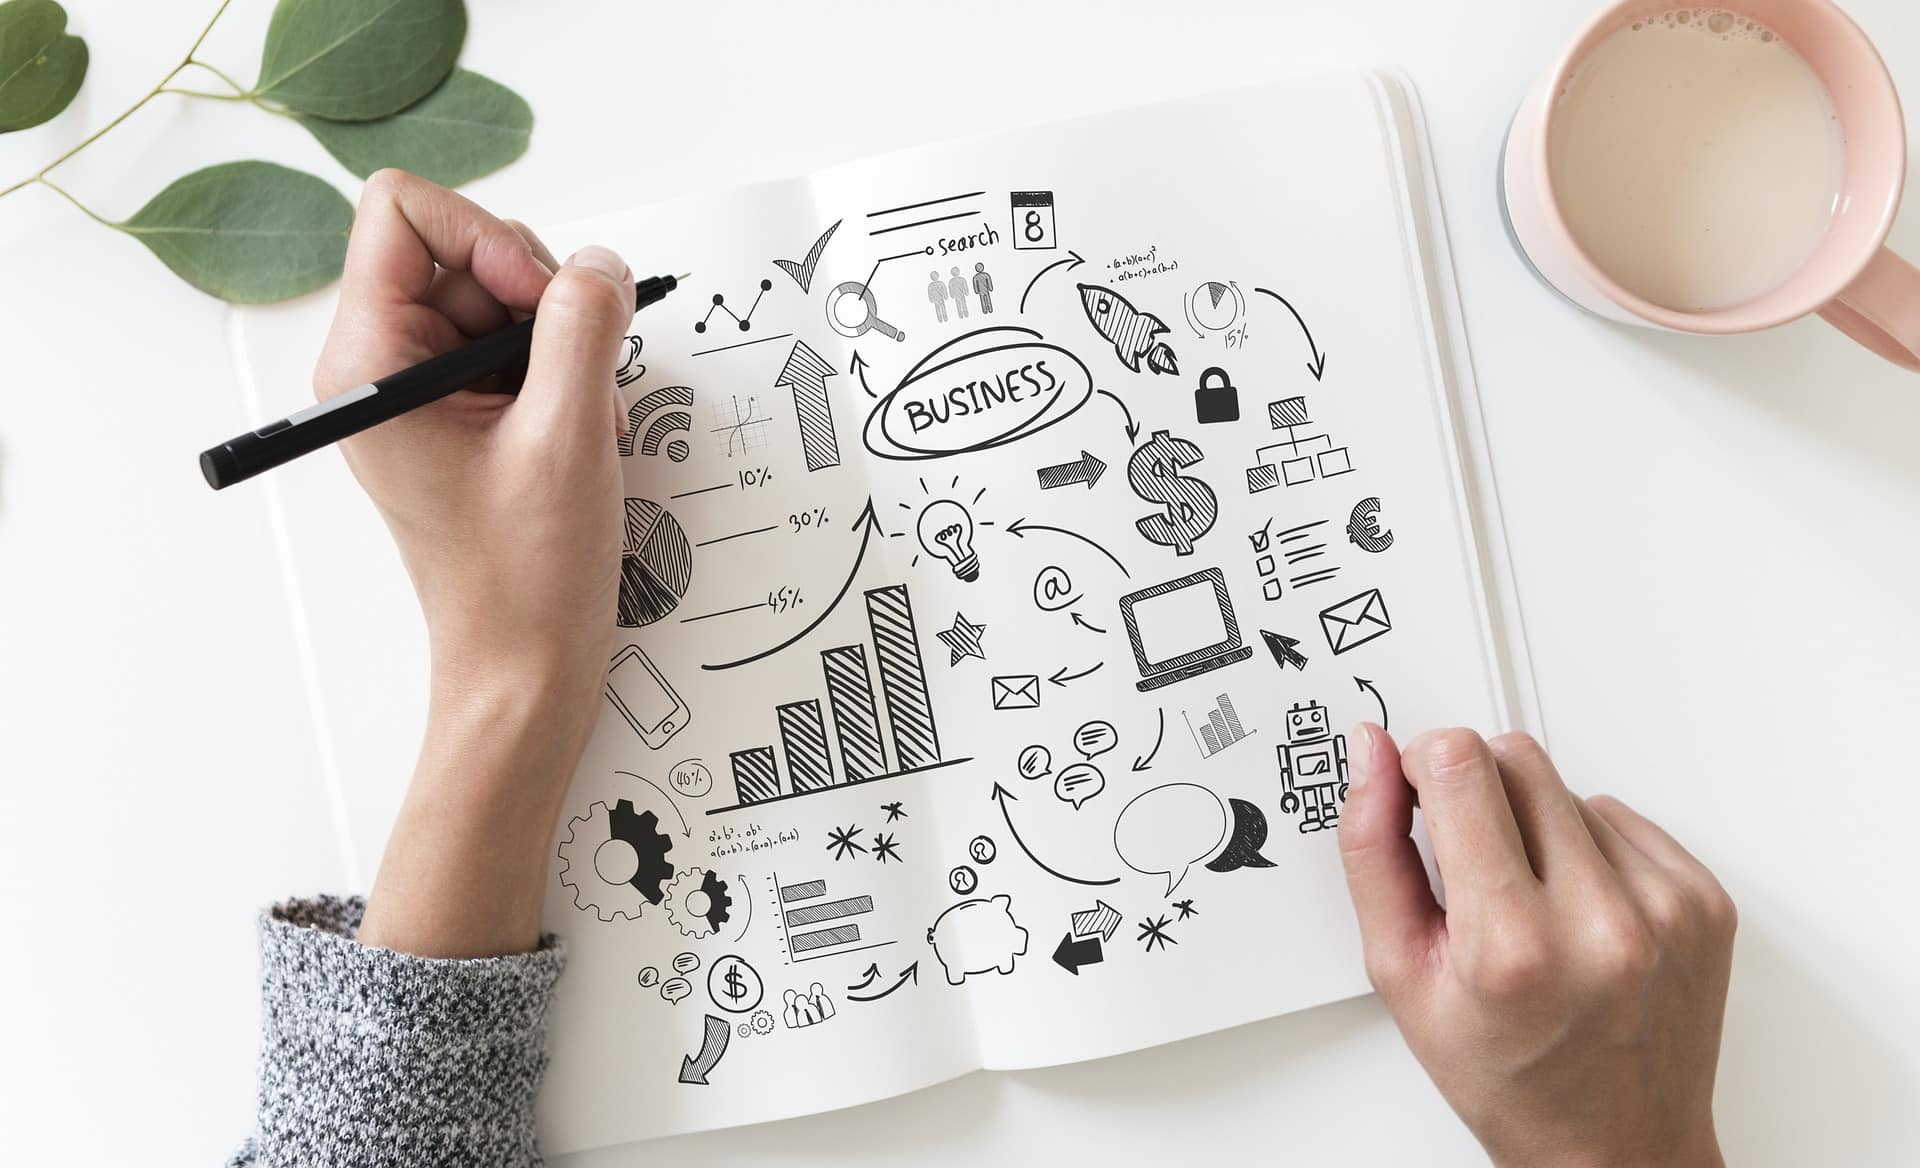 website design strategies for small businesses